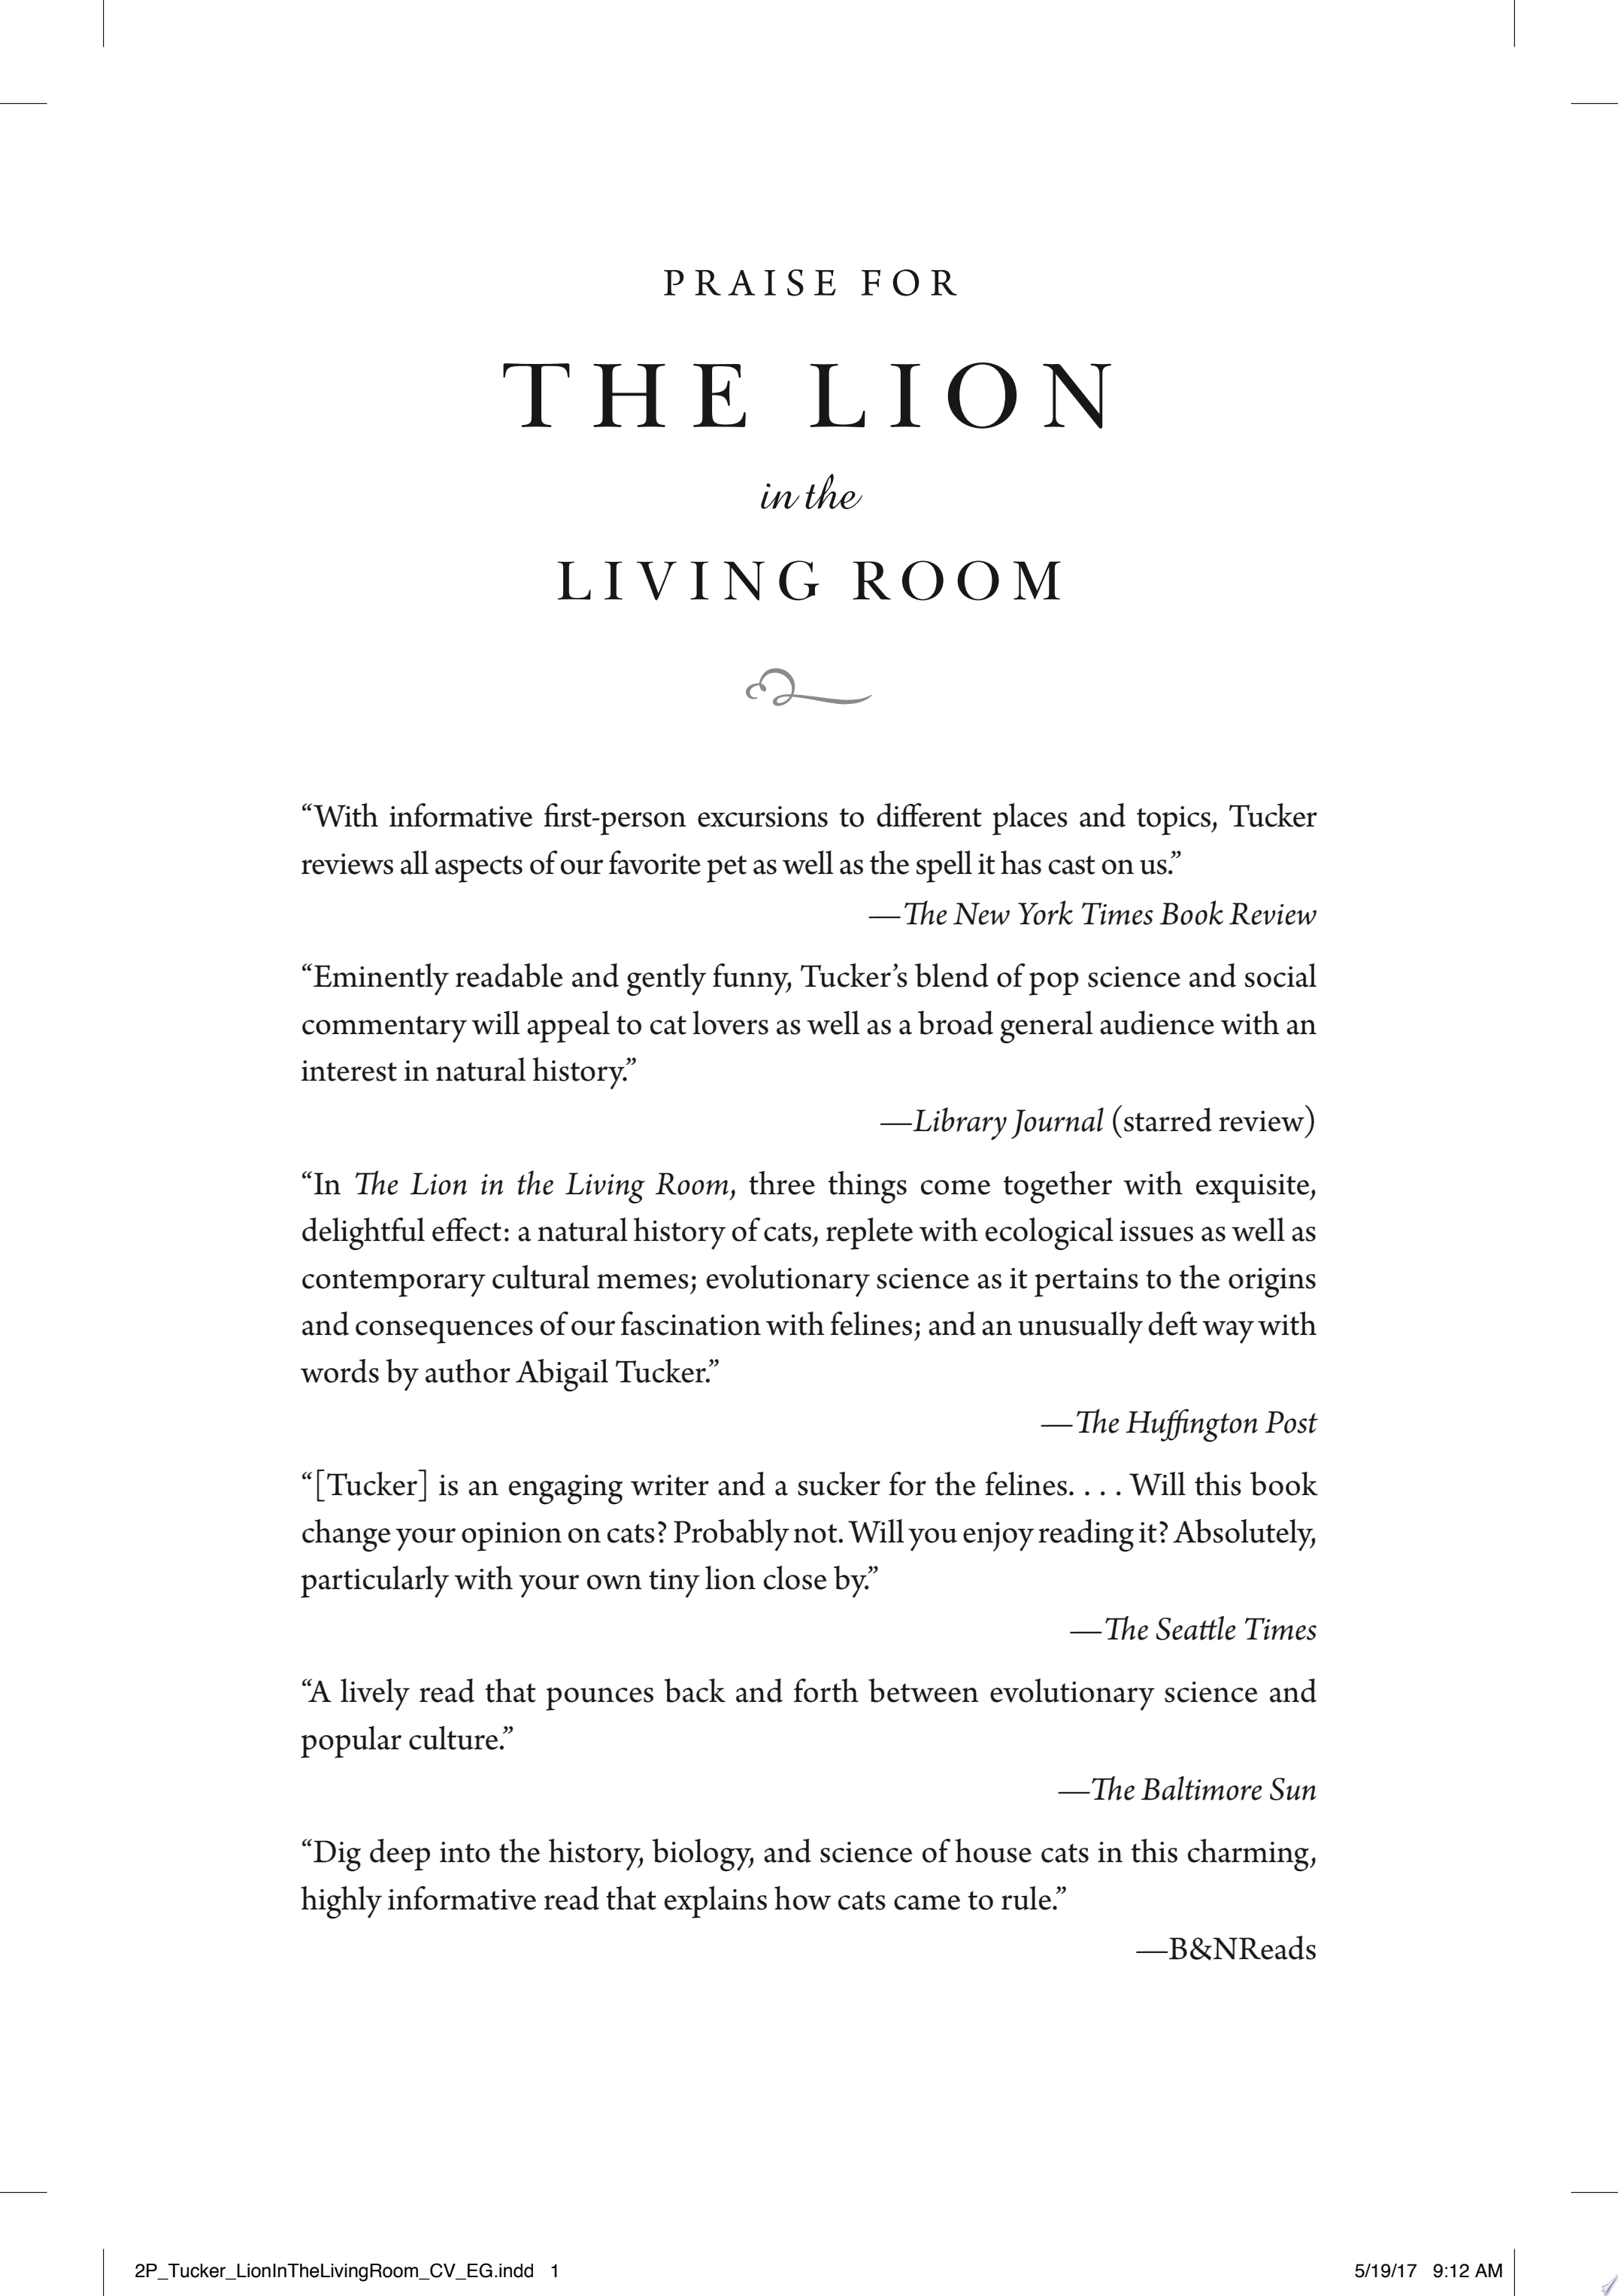 The Lion in the Living Room